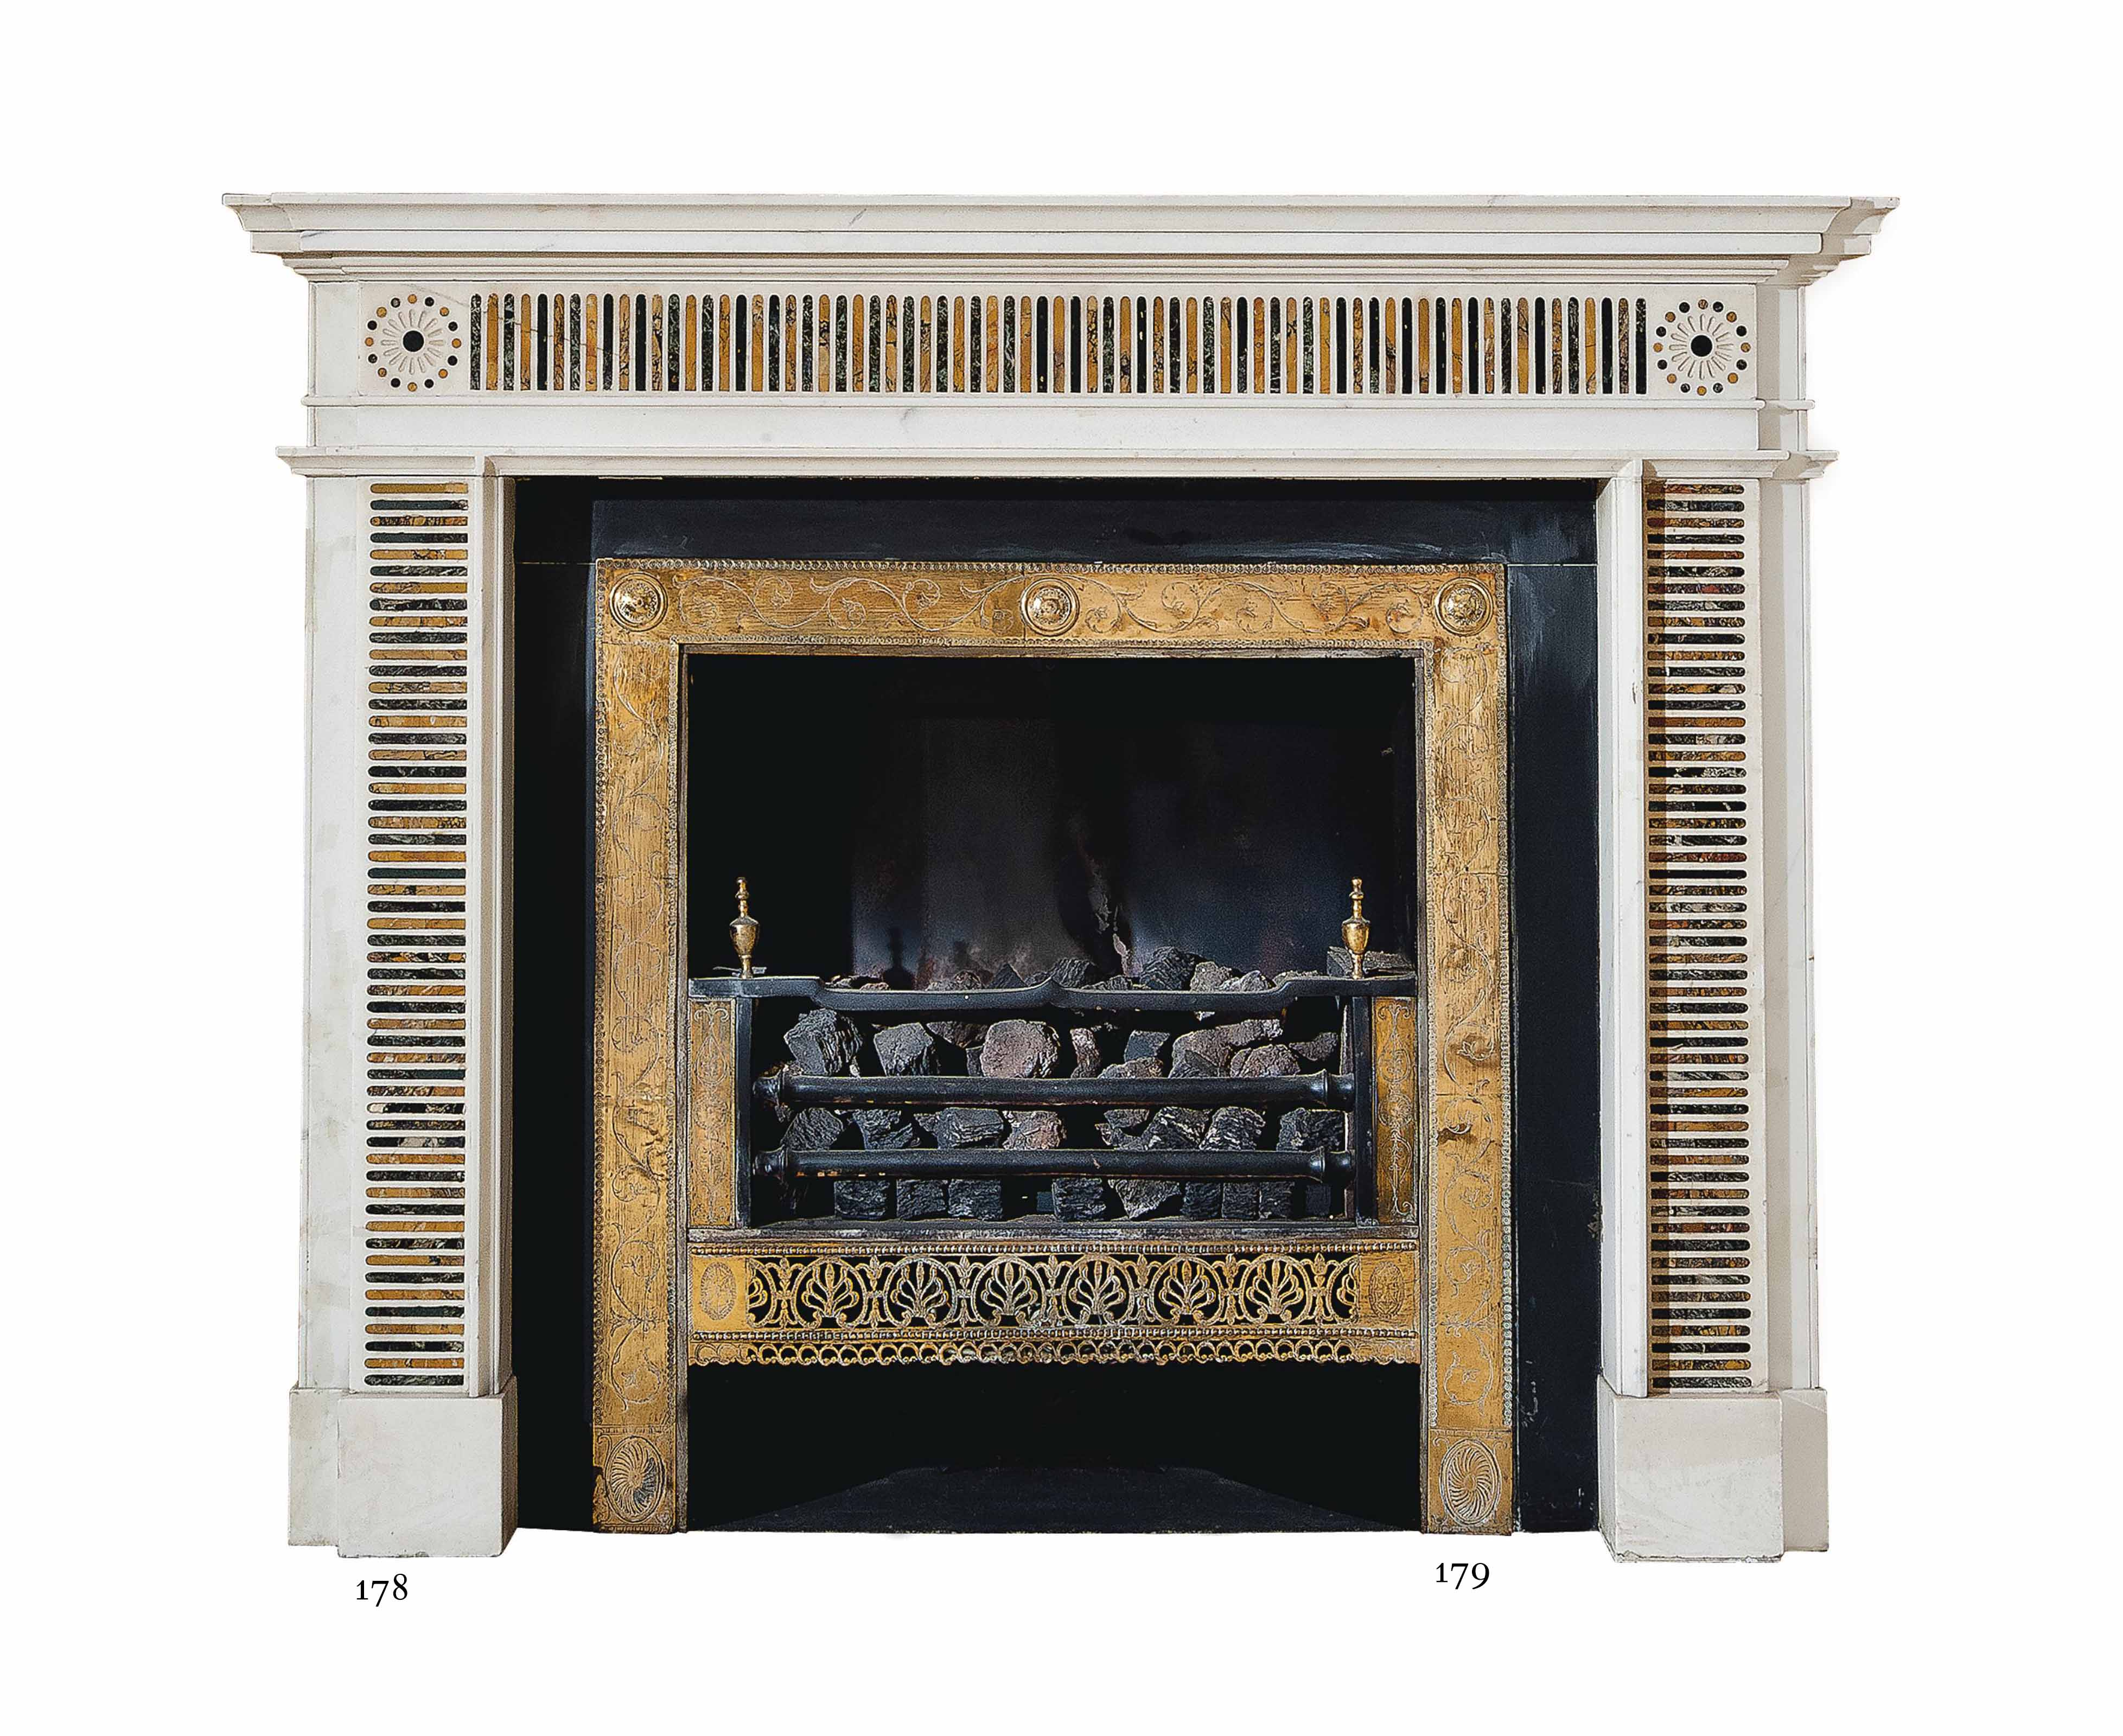 A GEORGE III-STYLE SIENA AND VERDE ANTICO INLAID STATUARY MARBLE CHIMNEYPIECE